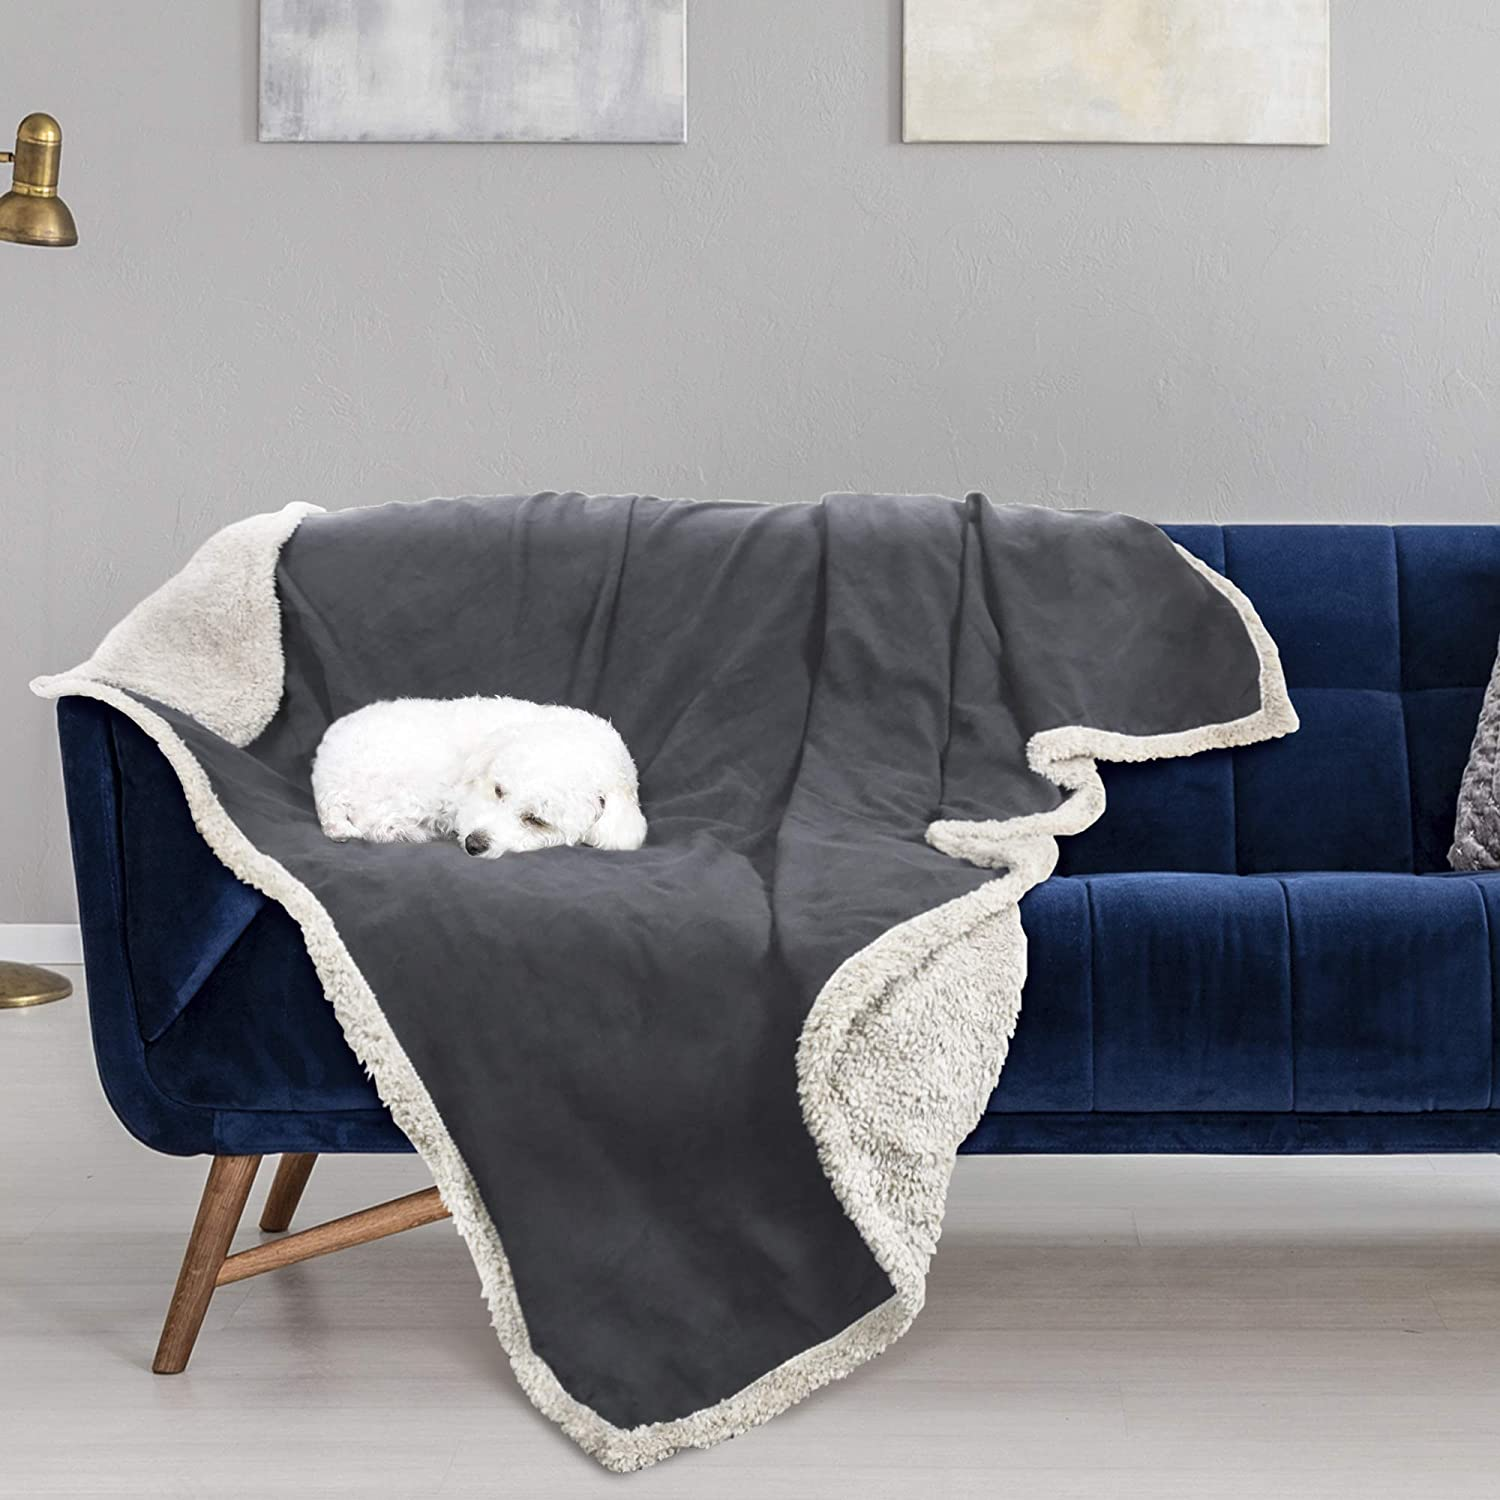 Amazon.com : Waterproof Blanket for Dogs, Pee Urine Liquid Proof Blanket  for Couch Sofa Bed, Soft Reversible Furniture Protector Cover, Sherpa Pet  Blanket for Small Medium Large Dog Cat, 80x60 inches :